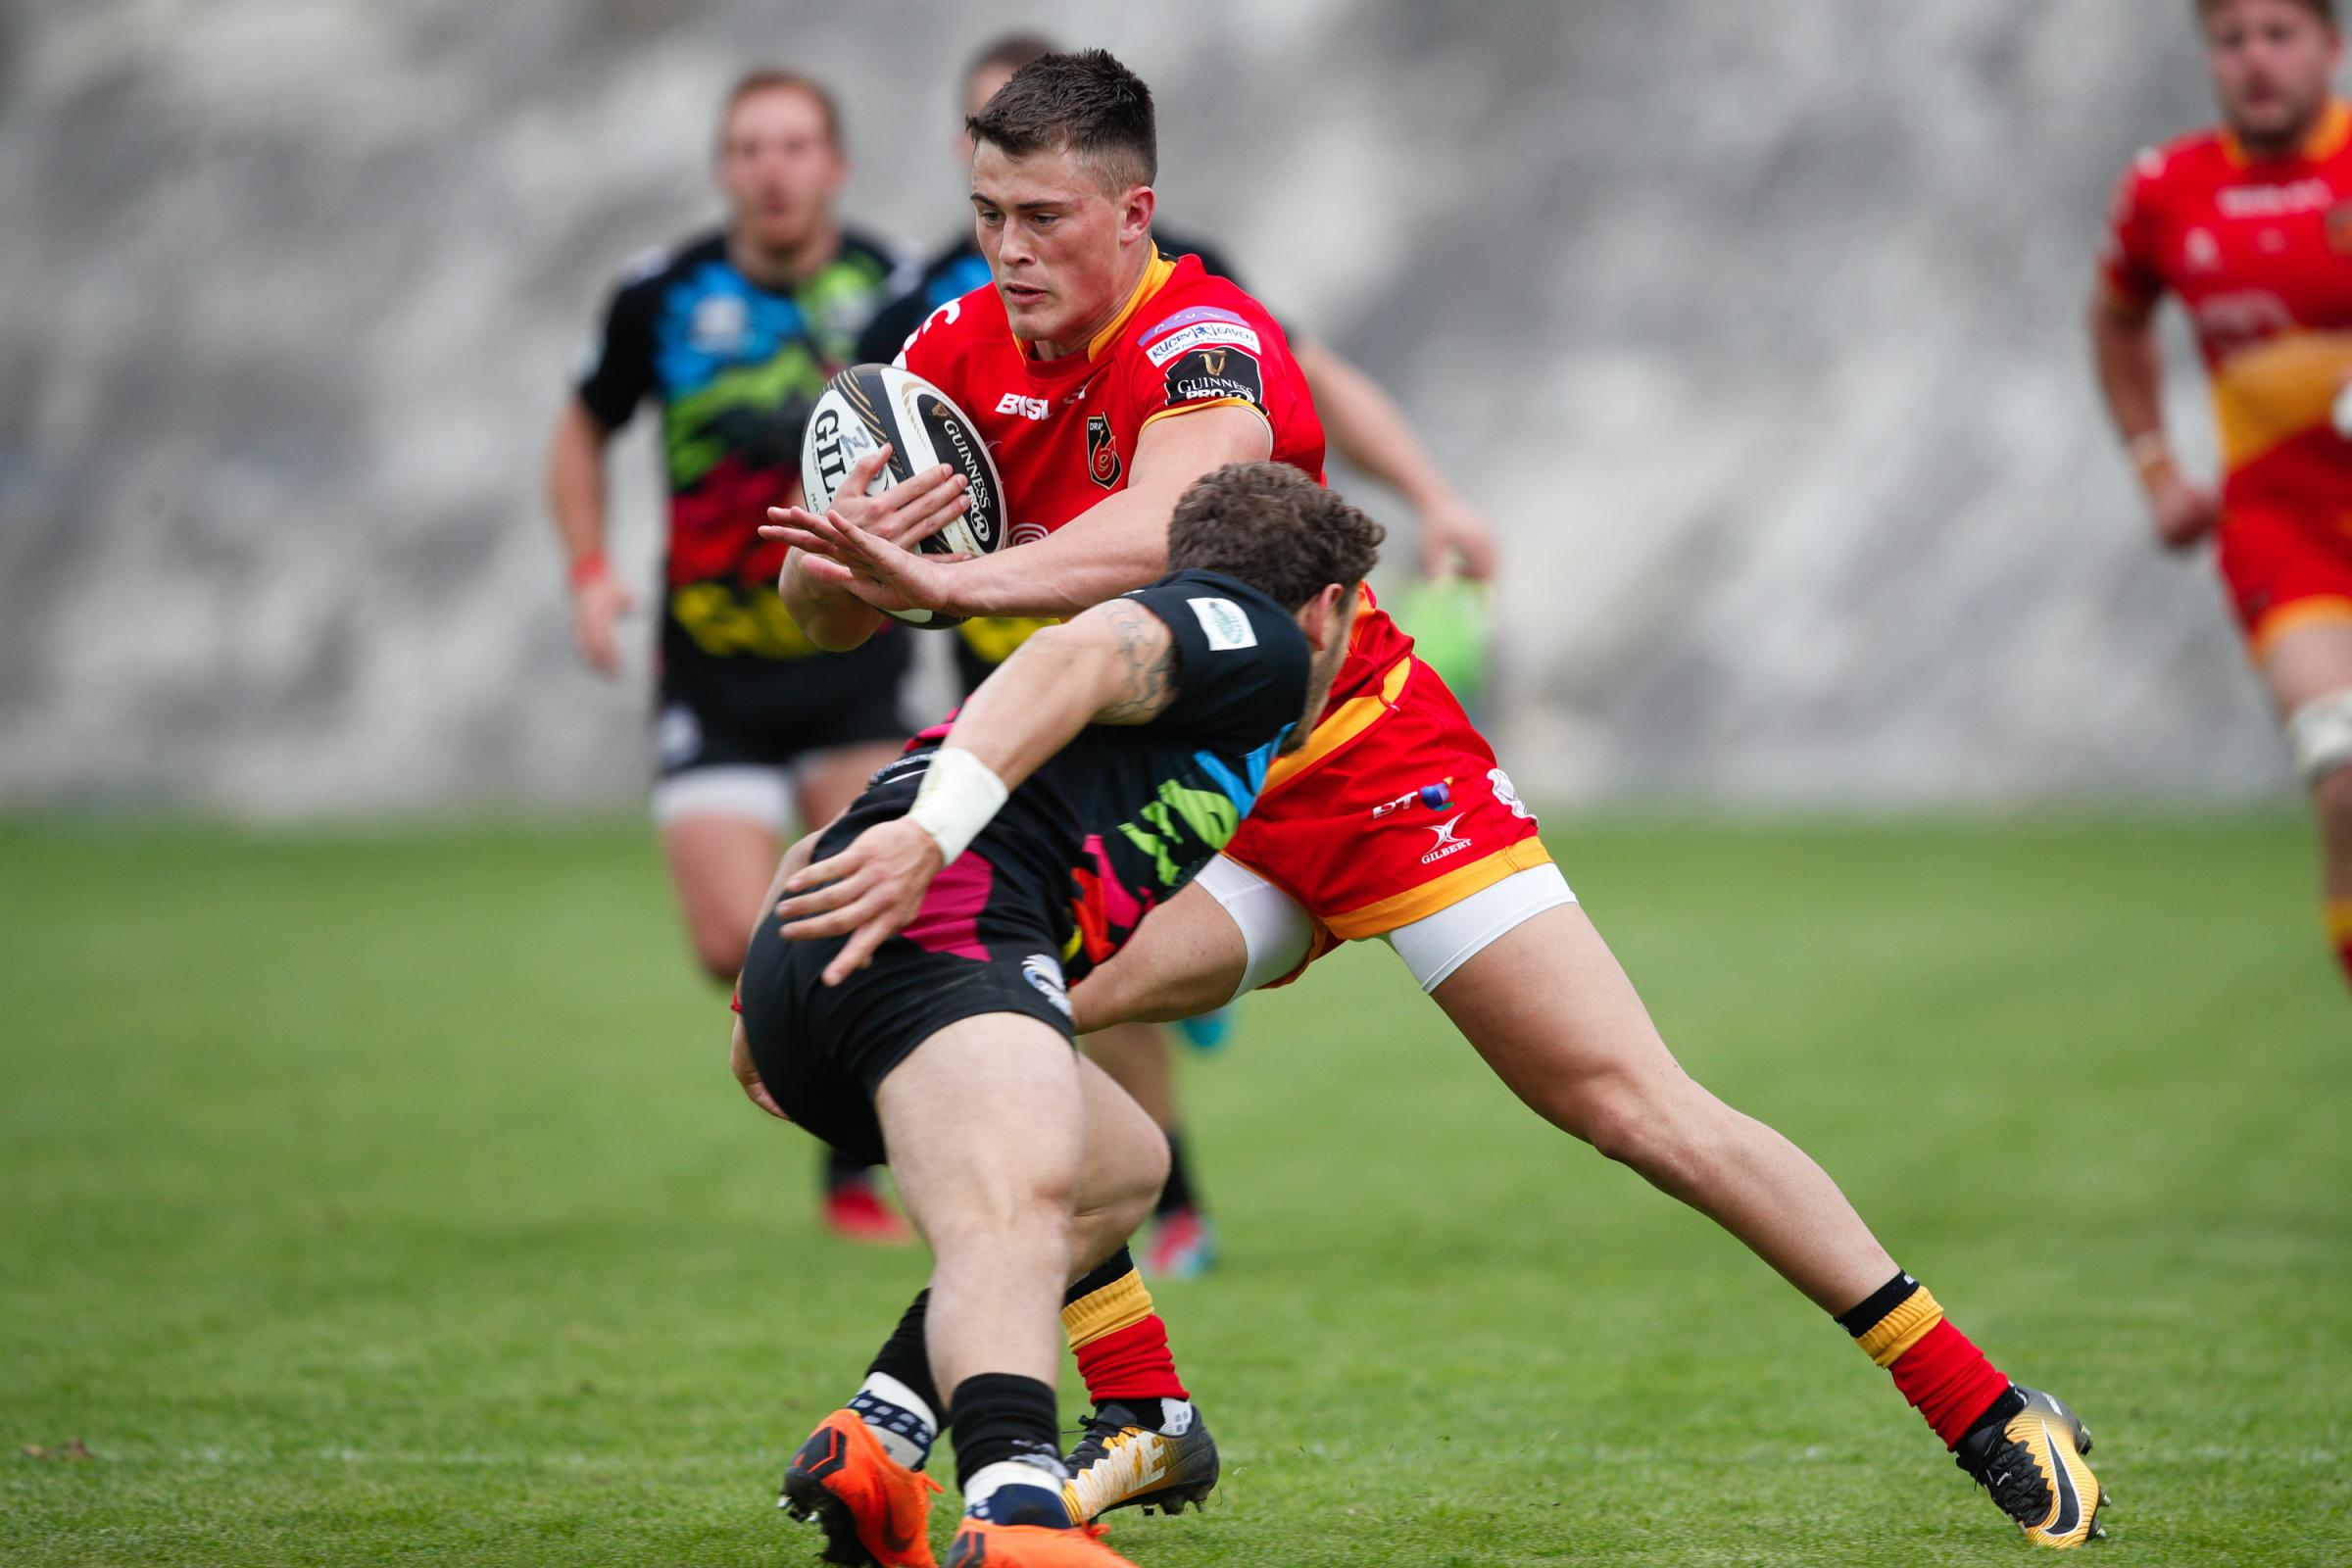 WELCOME RETURN: Dragons wing Jared Rosser is back in the side to face Zebre